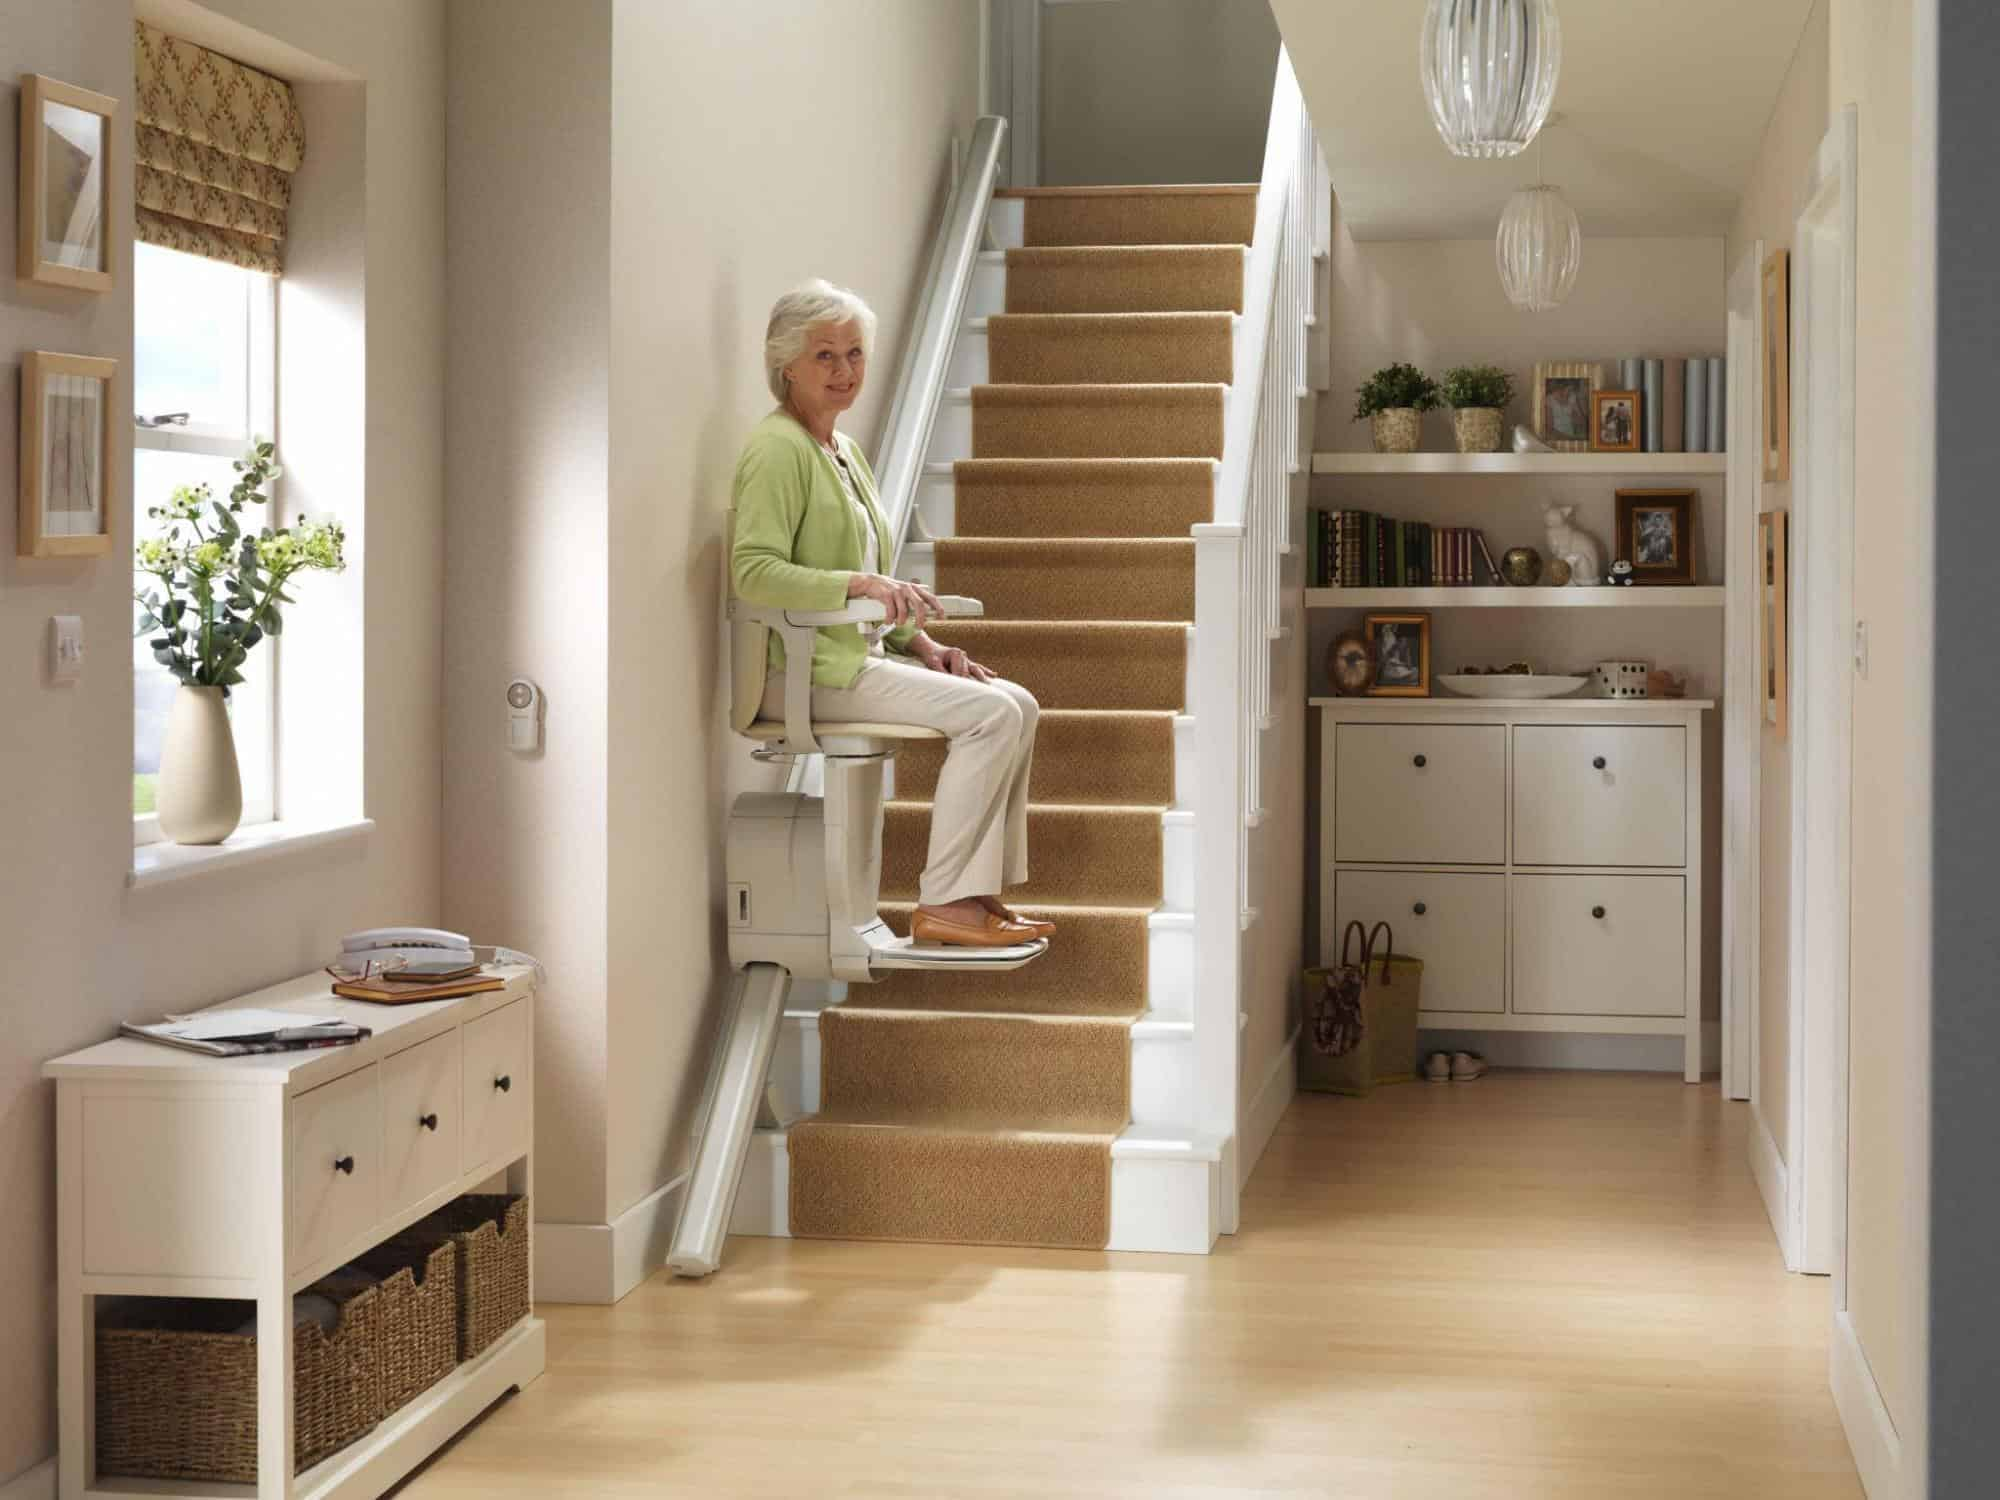 Stannah Stairlift Approved Dealer Manchester